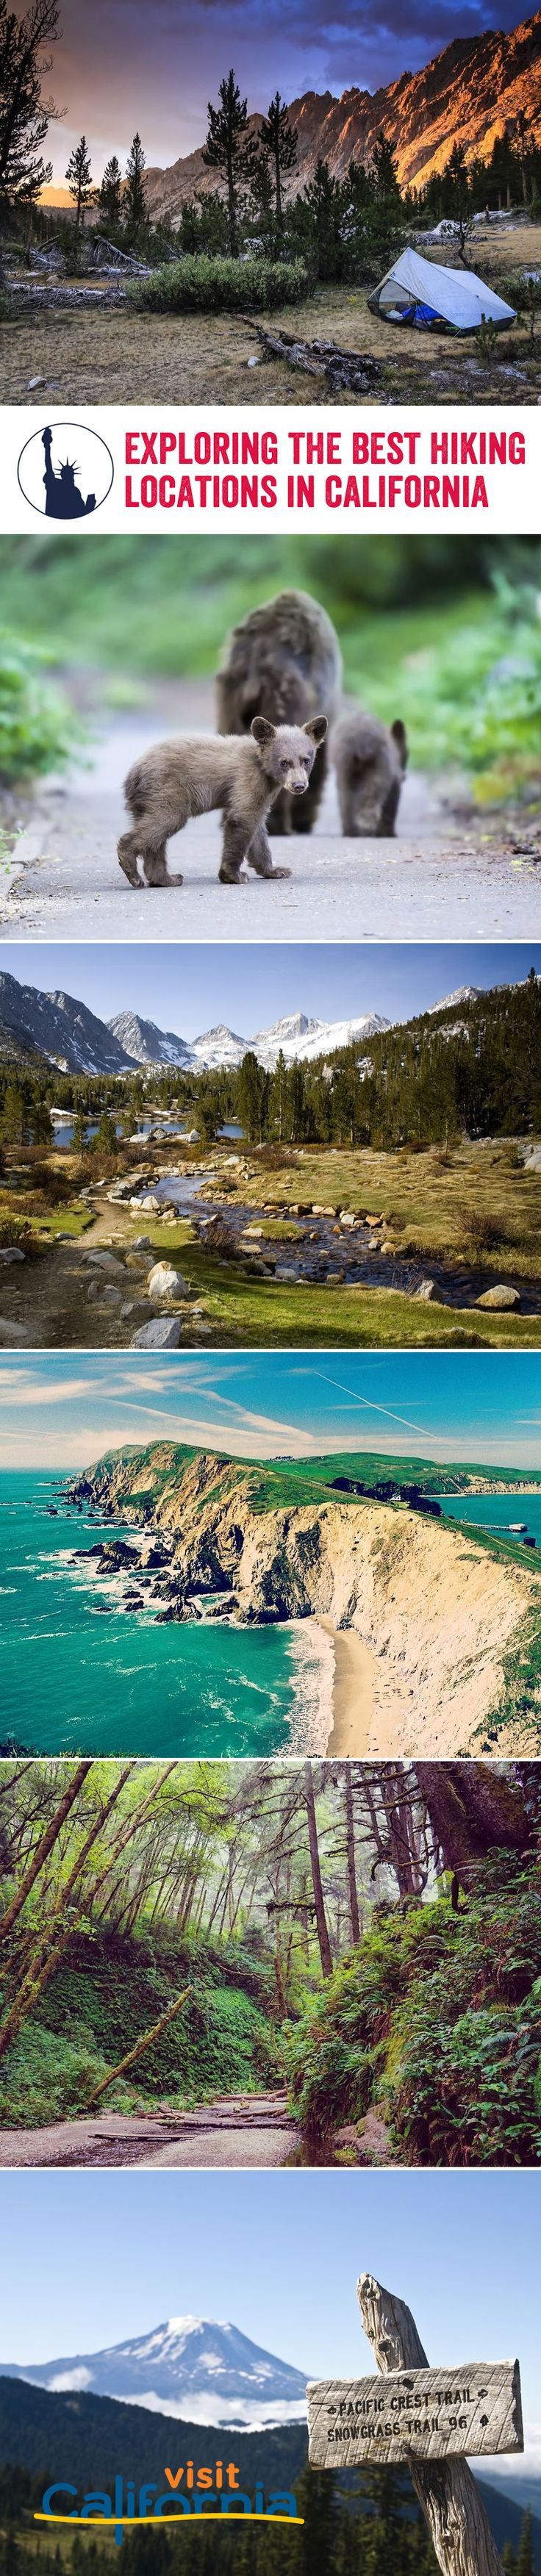 Grab your walking boots, California is full of incredible hiking trails filled with natural beauty, and a deep sense of adventure